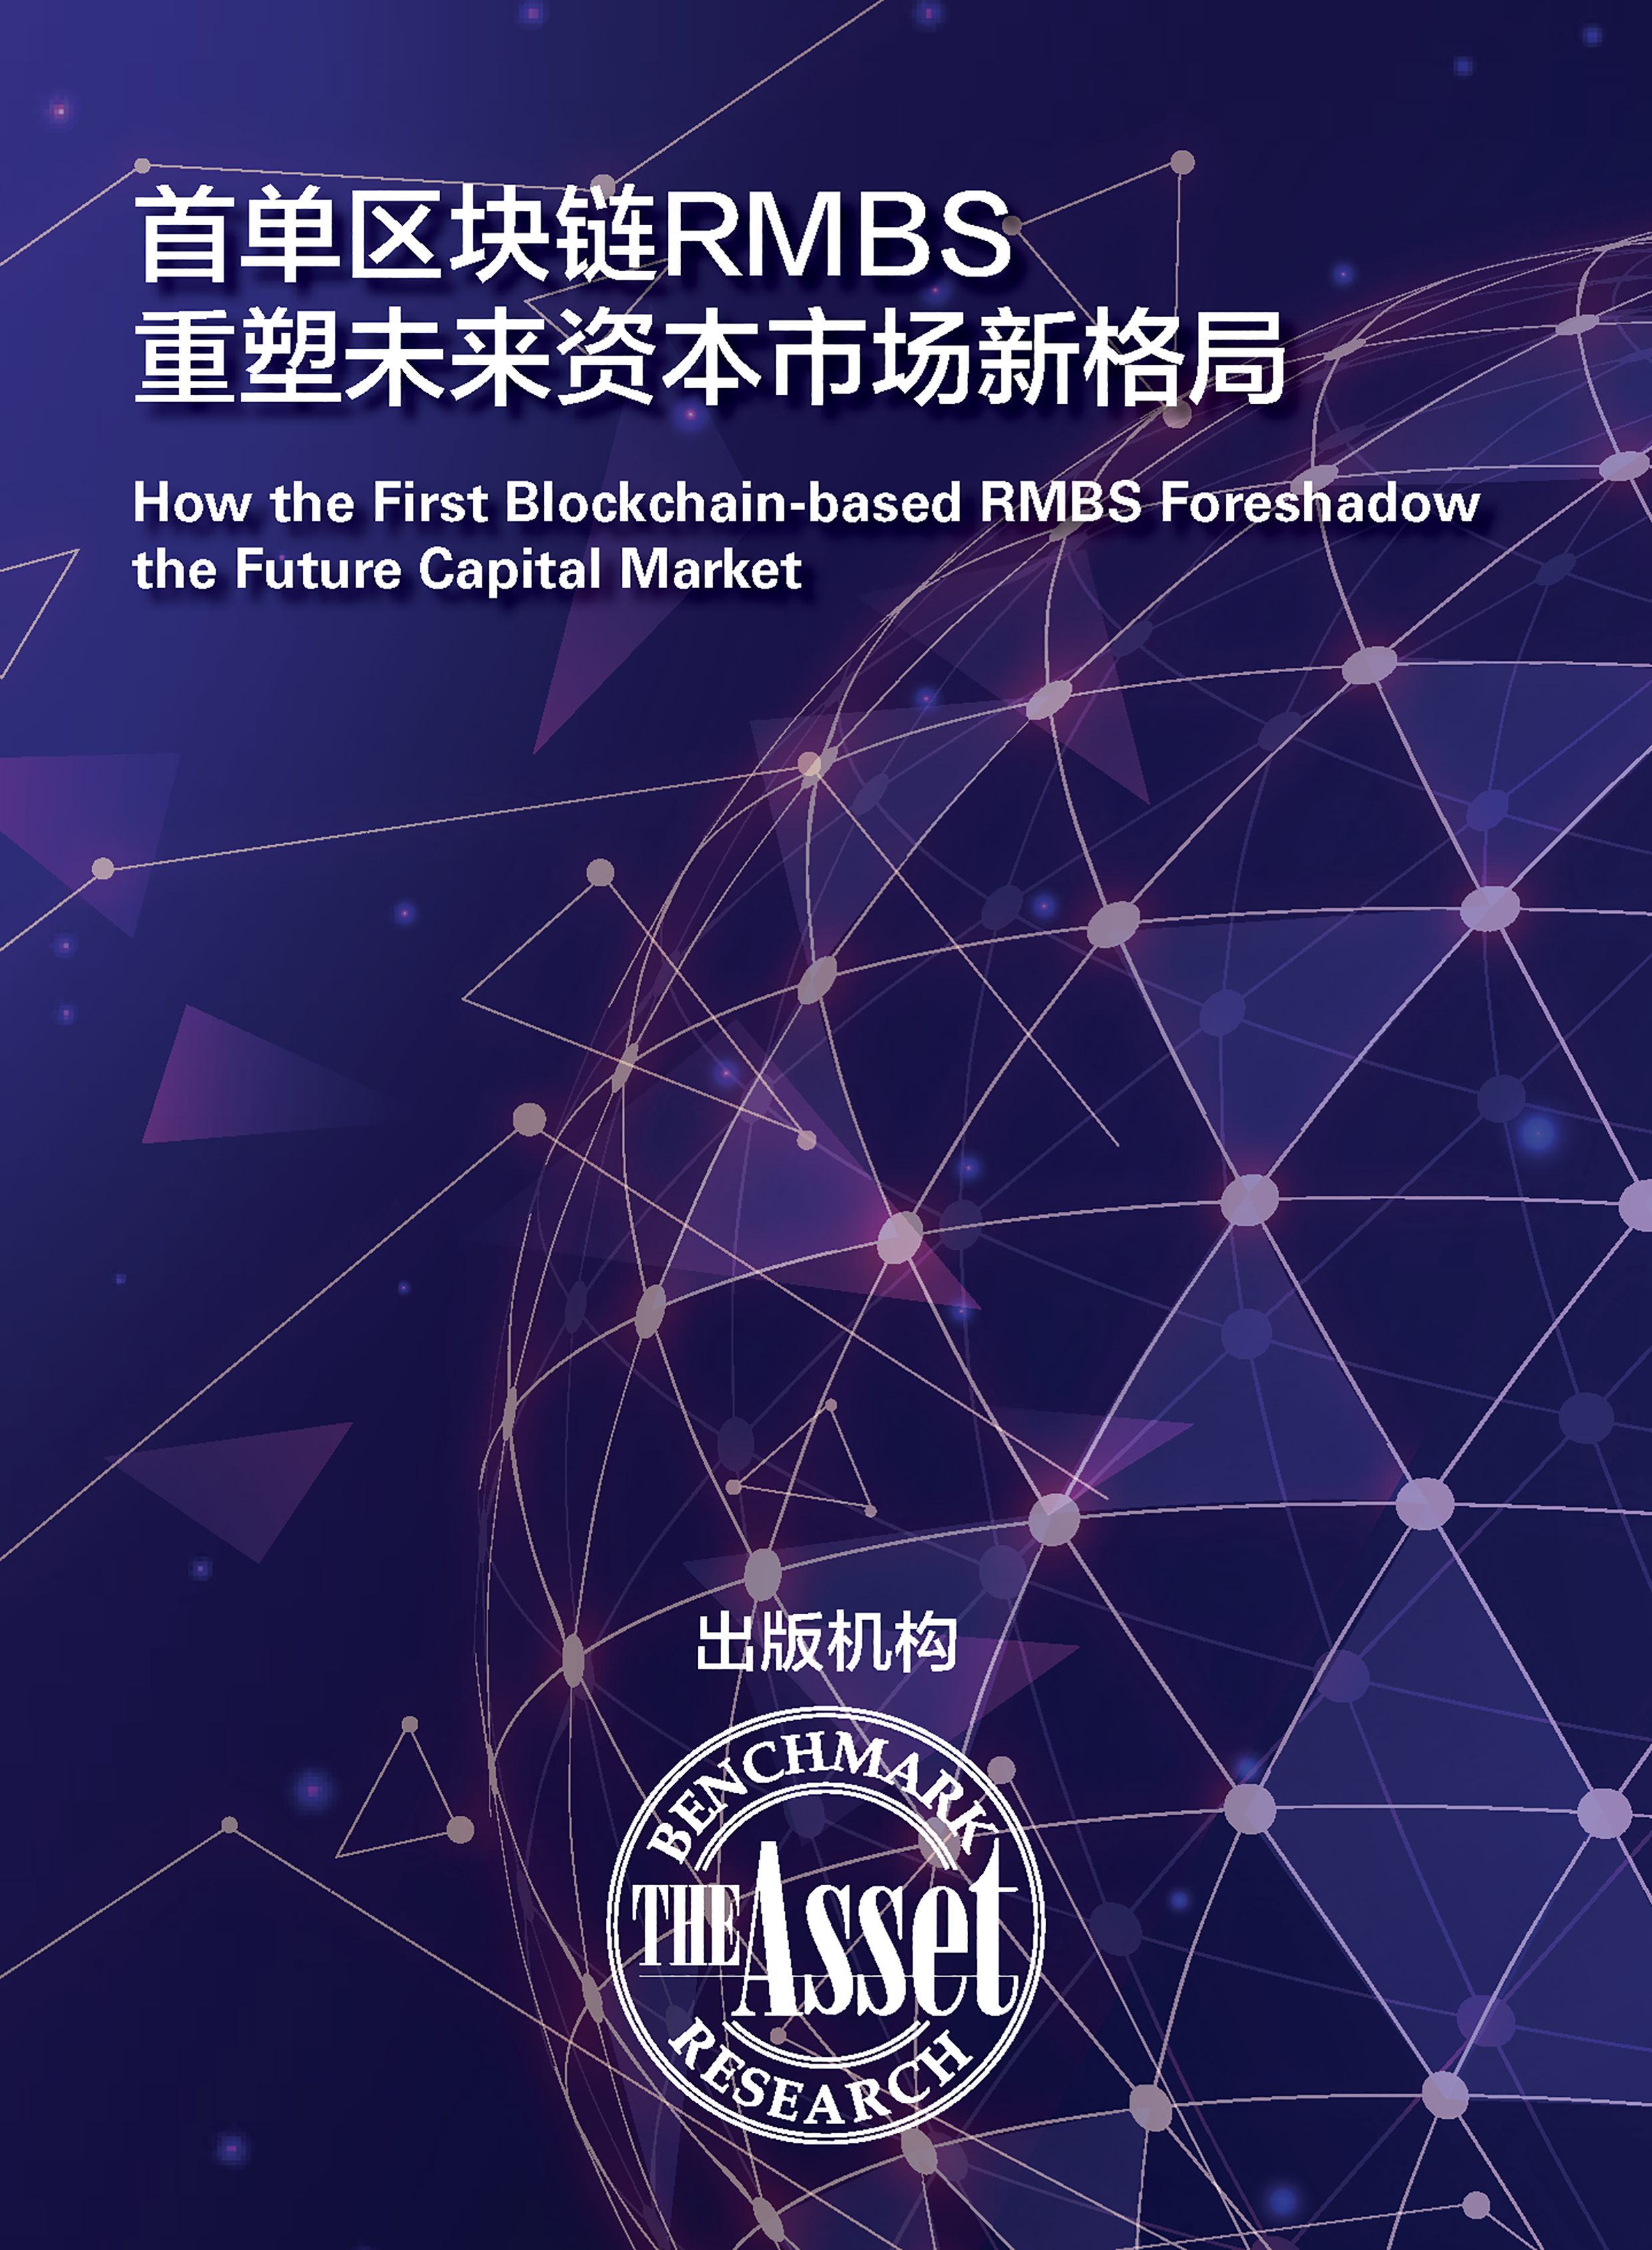 How the First Blockchain-based RMBS Foreshadow the Future Capital Market